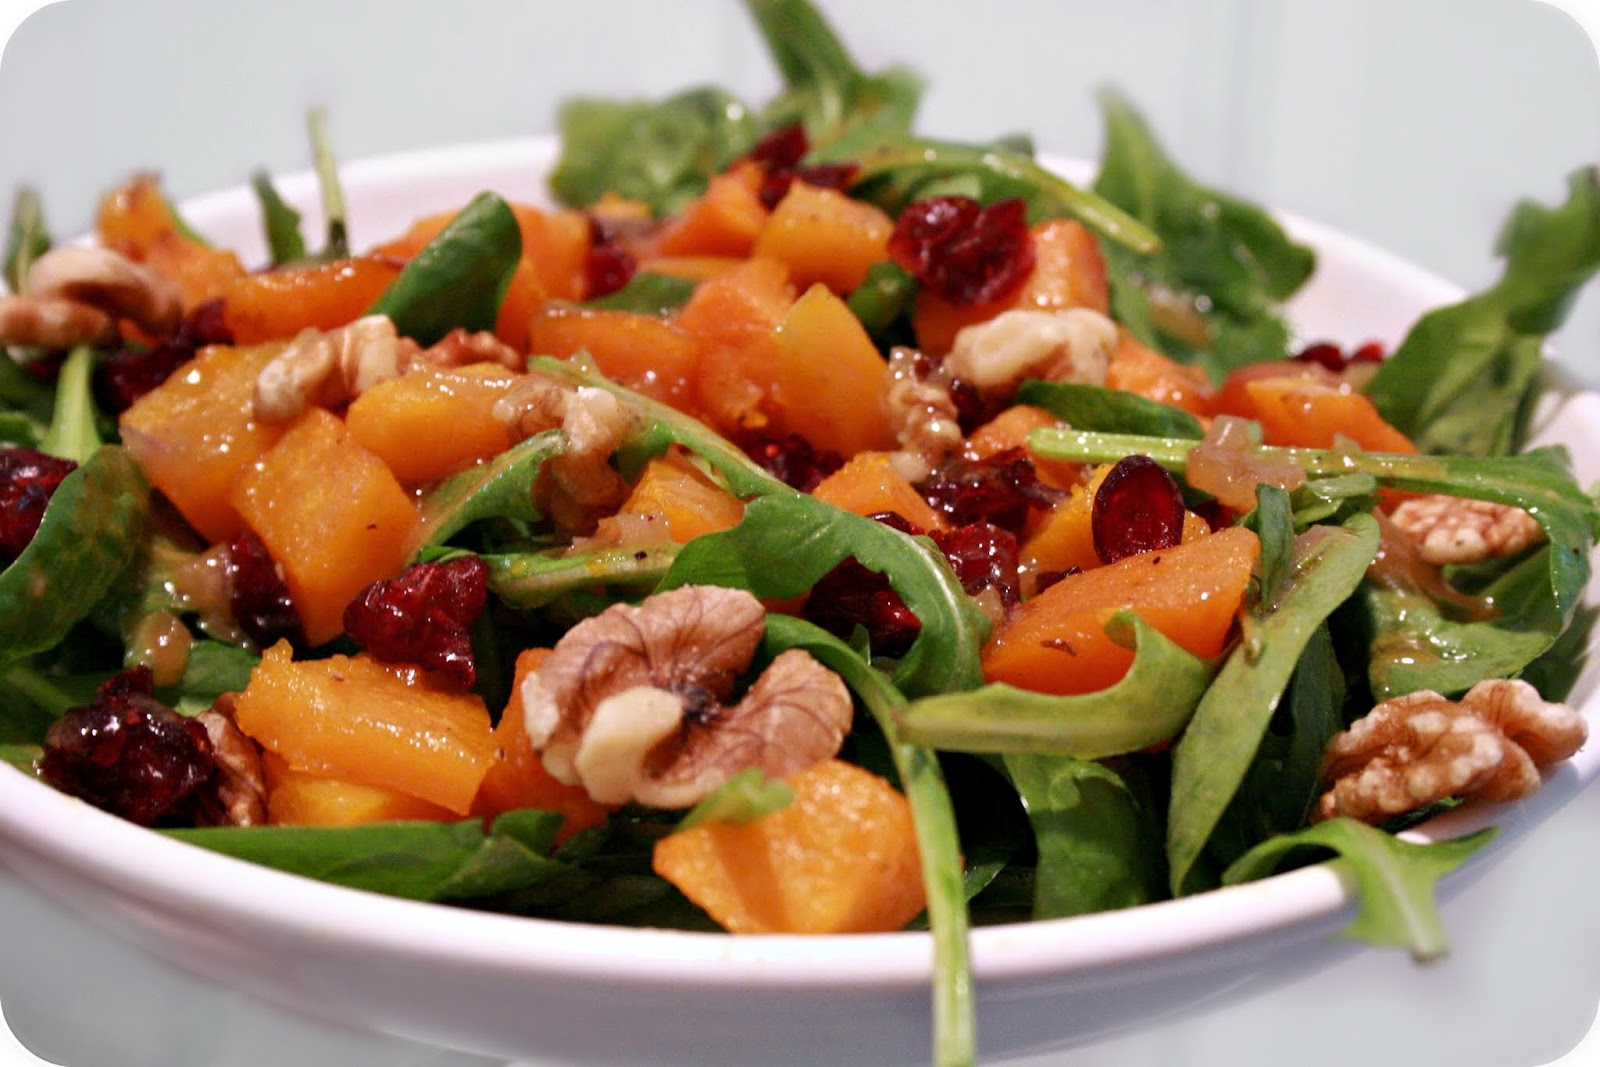 Grubarazzi: Roasted Butternut Squash Salad with Apple Cider Dressing